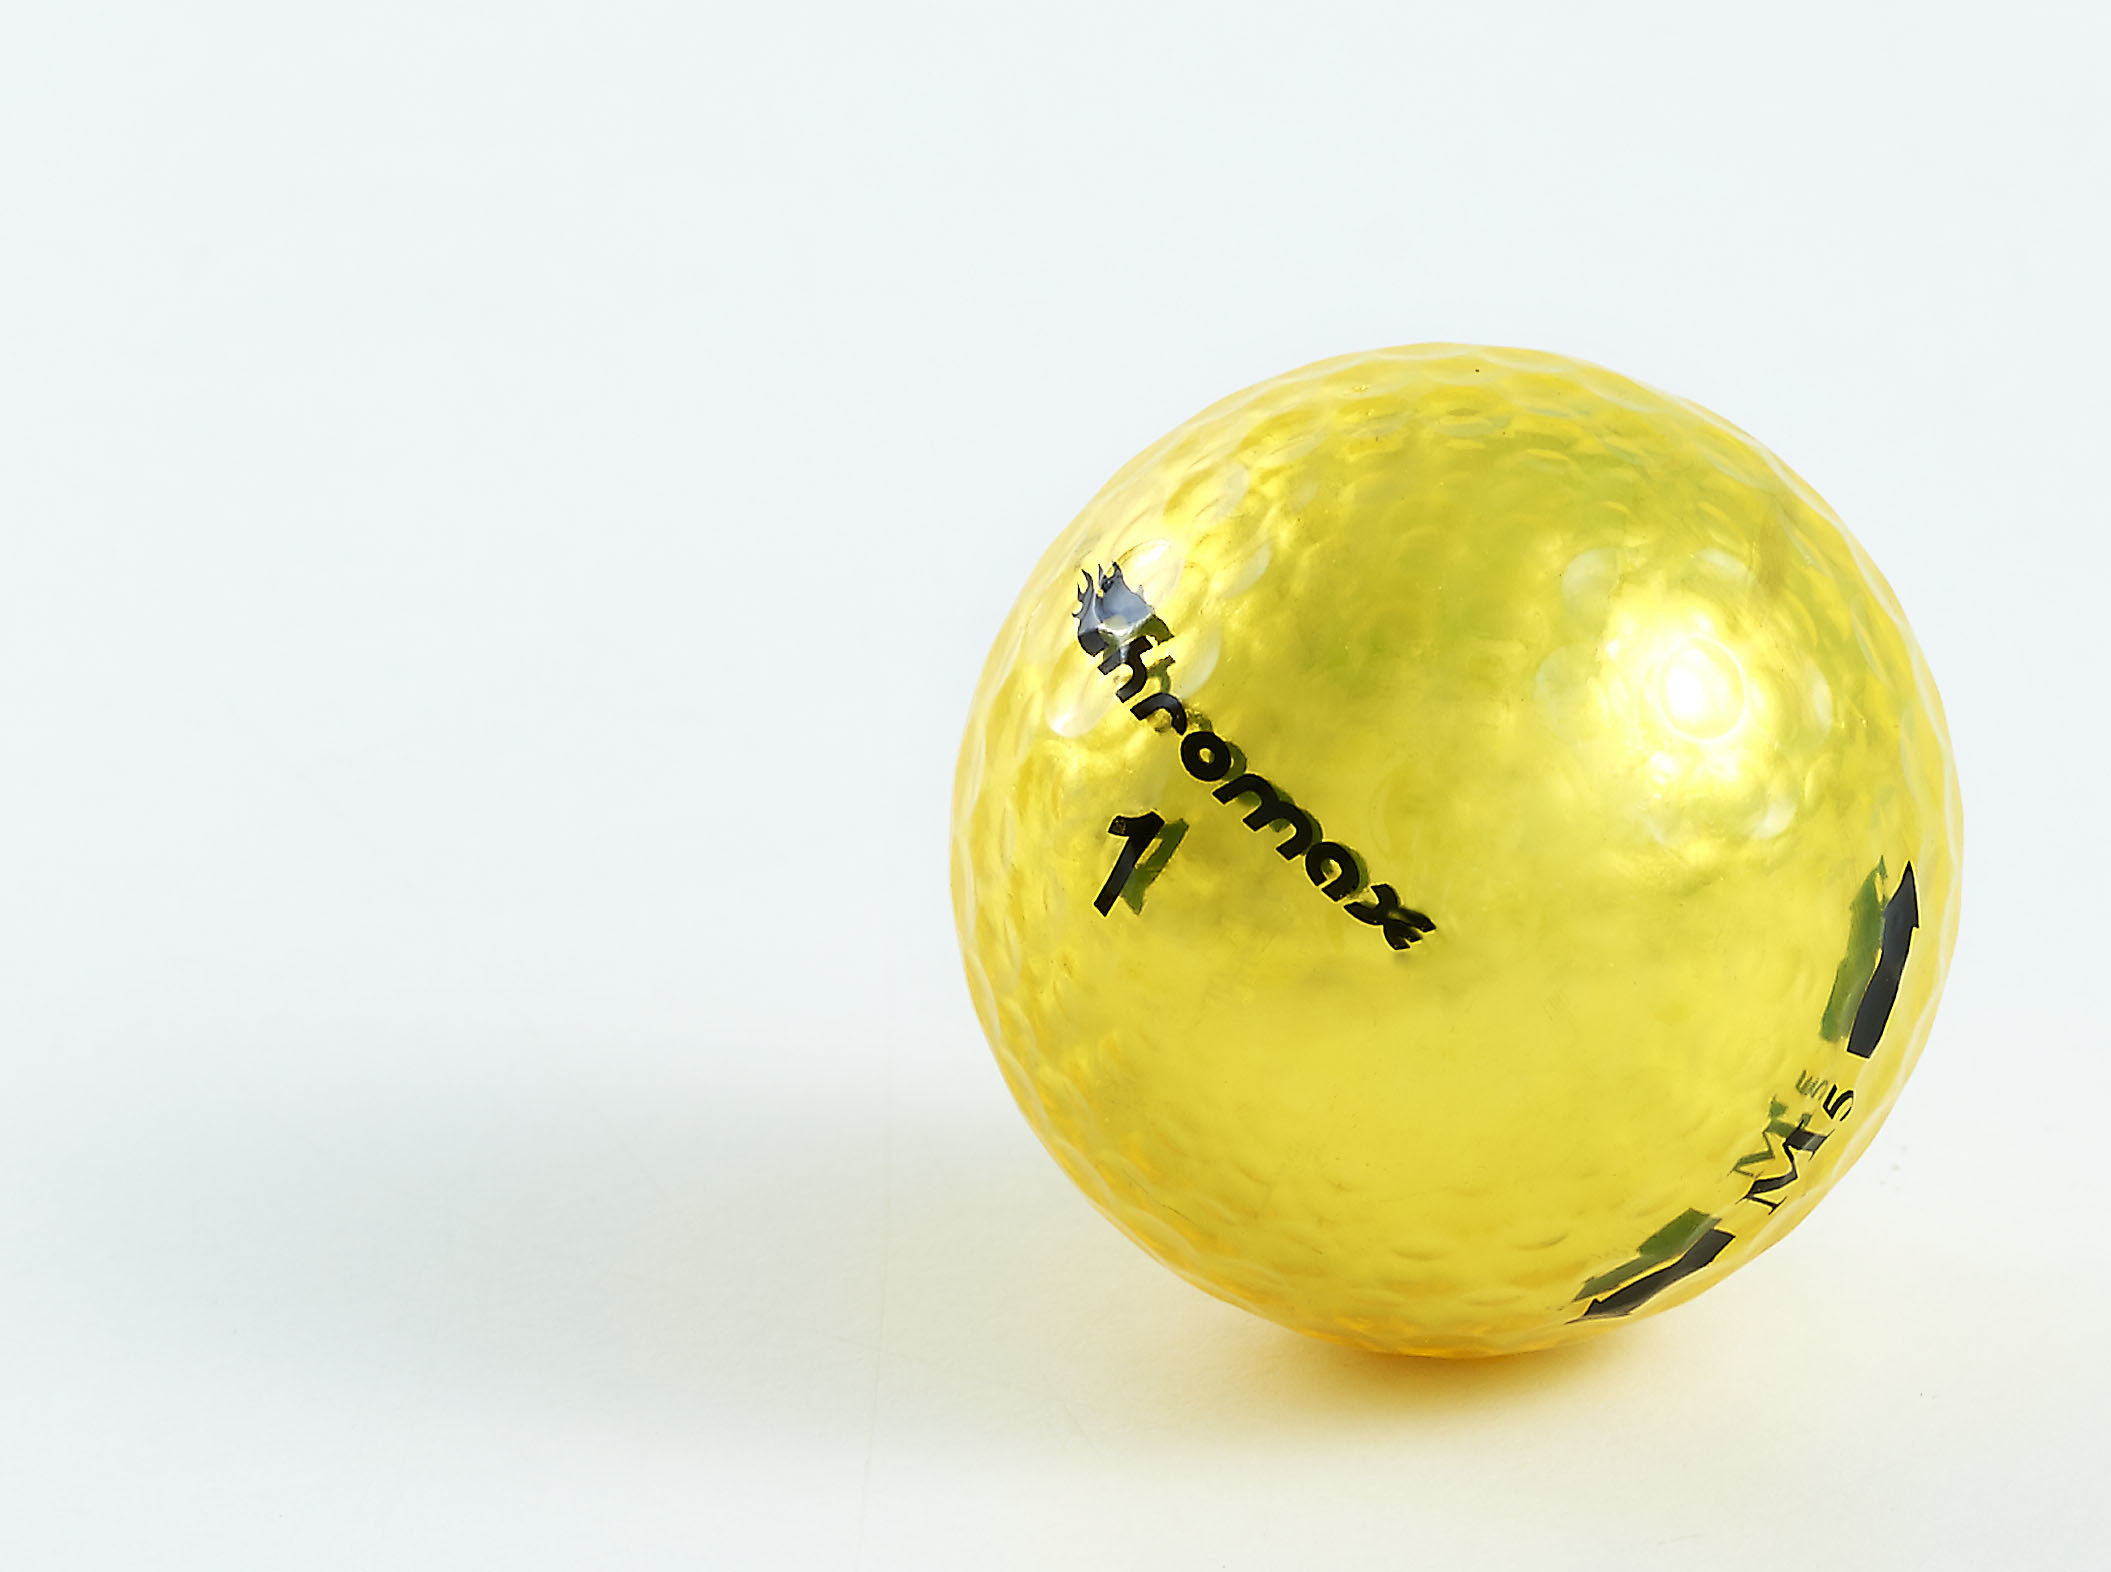 Chromax yellow golf ball M5 single